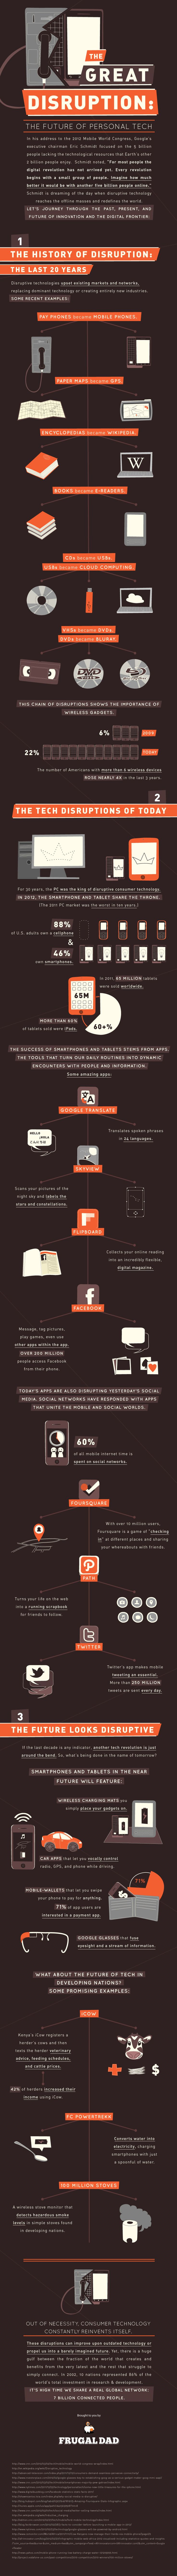 The Great Disruption: The Future of Personal Tech #infograph